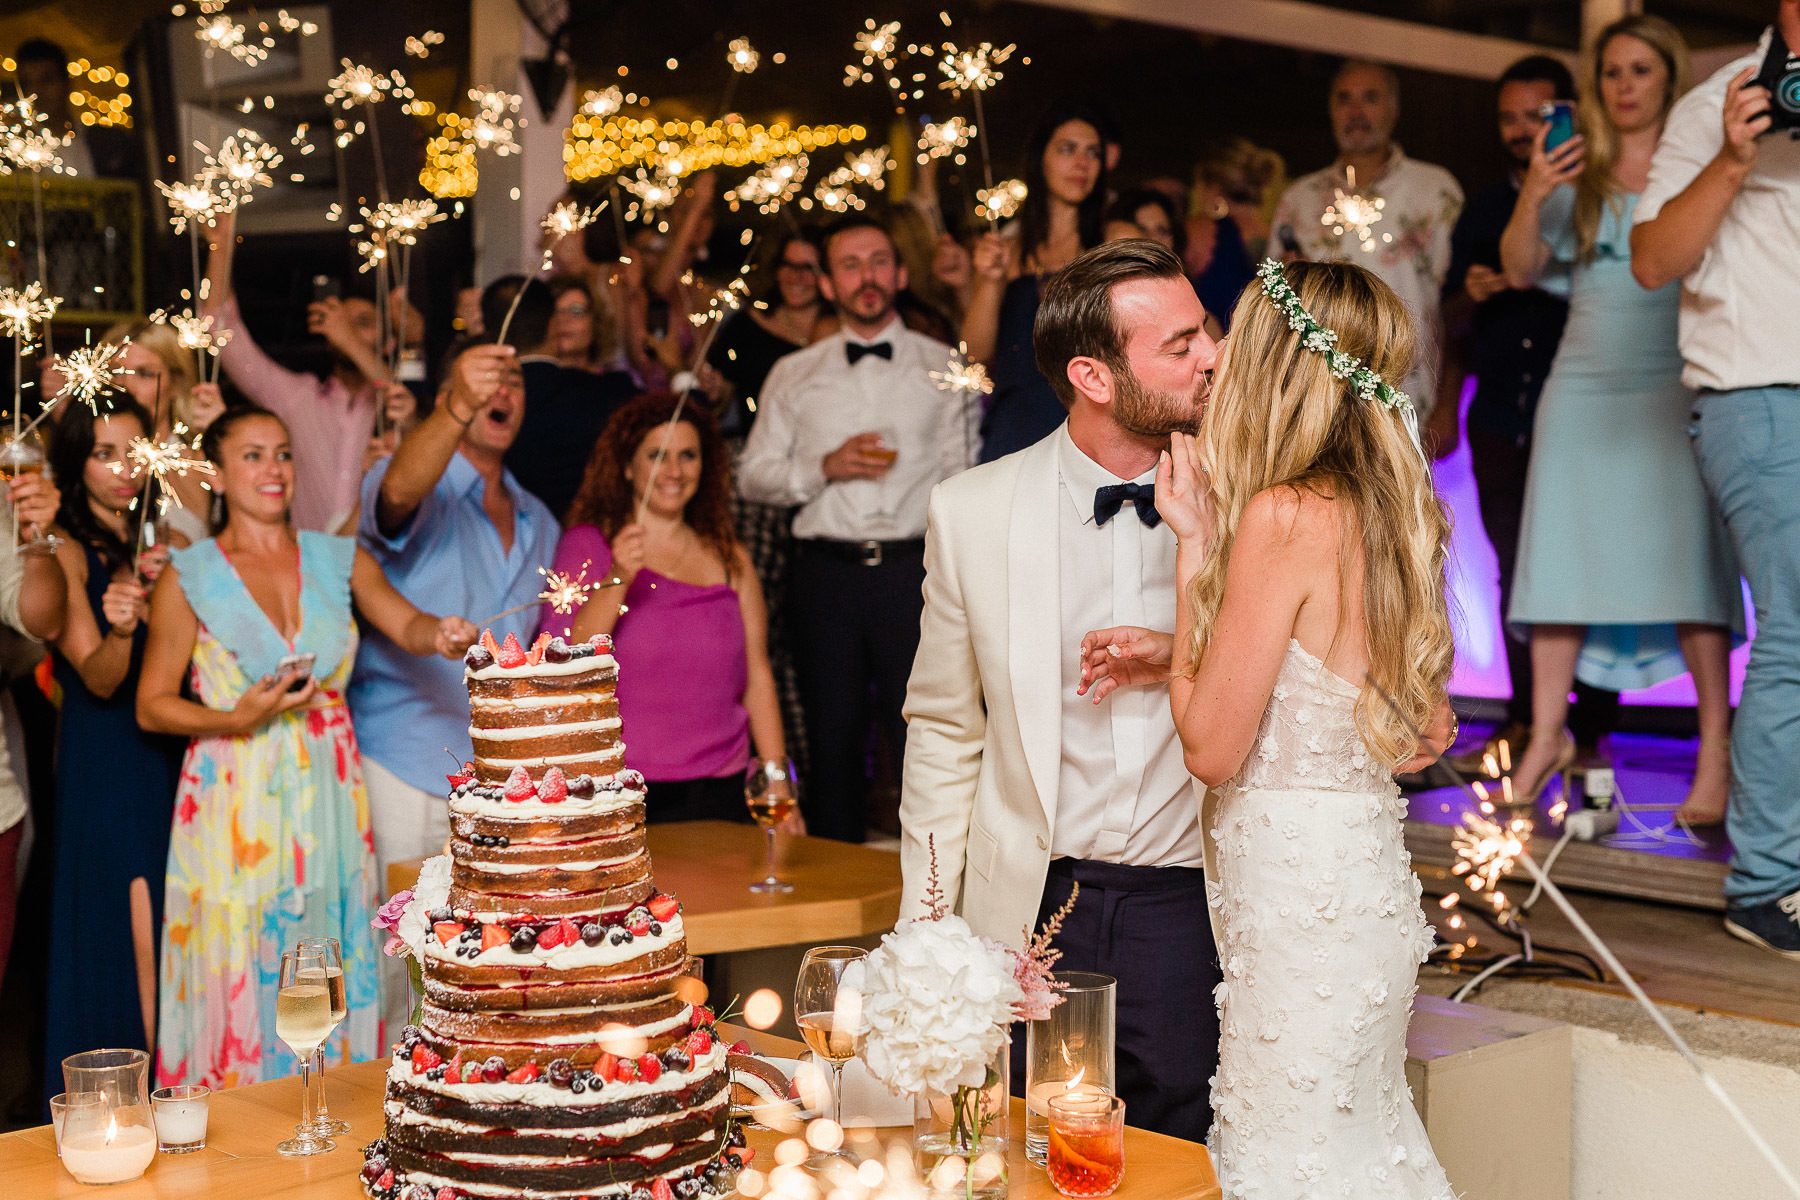 Cake-cutting: bride and groom kiss.